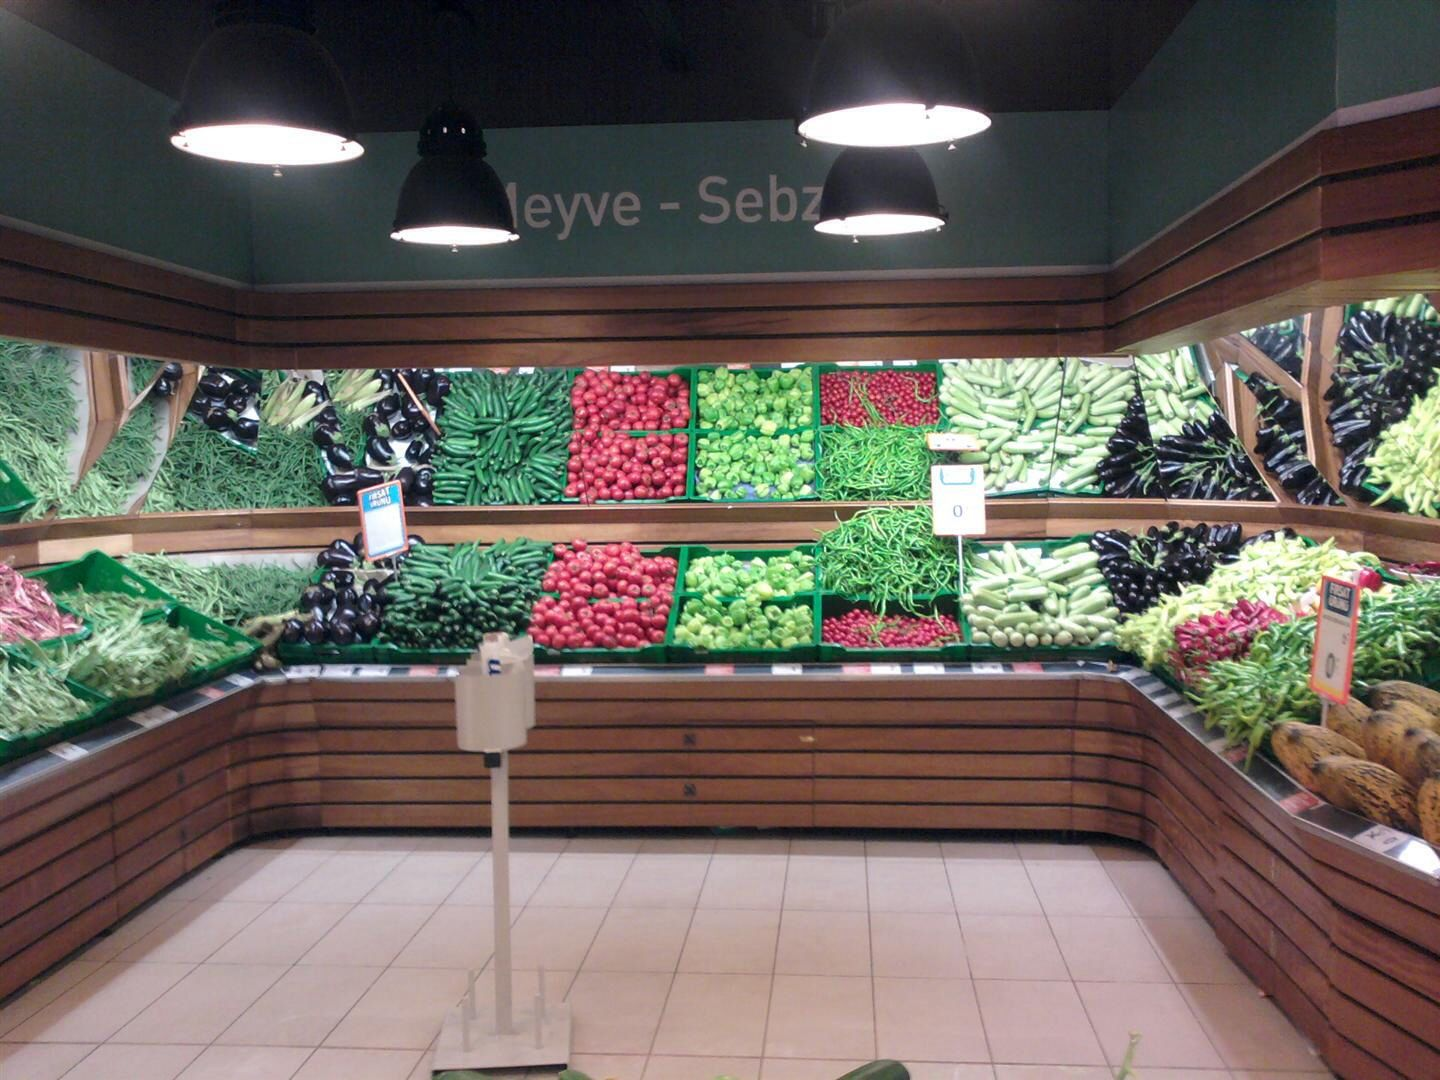 Supermarkets Grocery Store Designs Grocery Store Designs